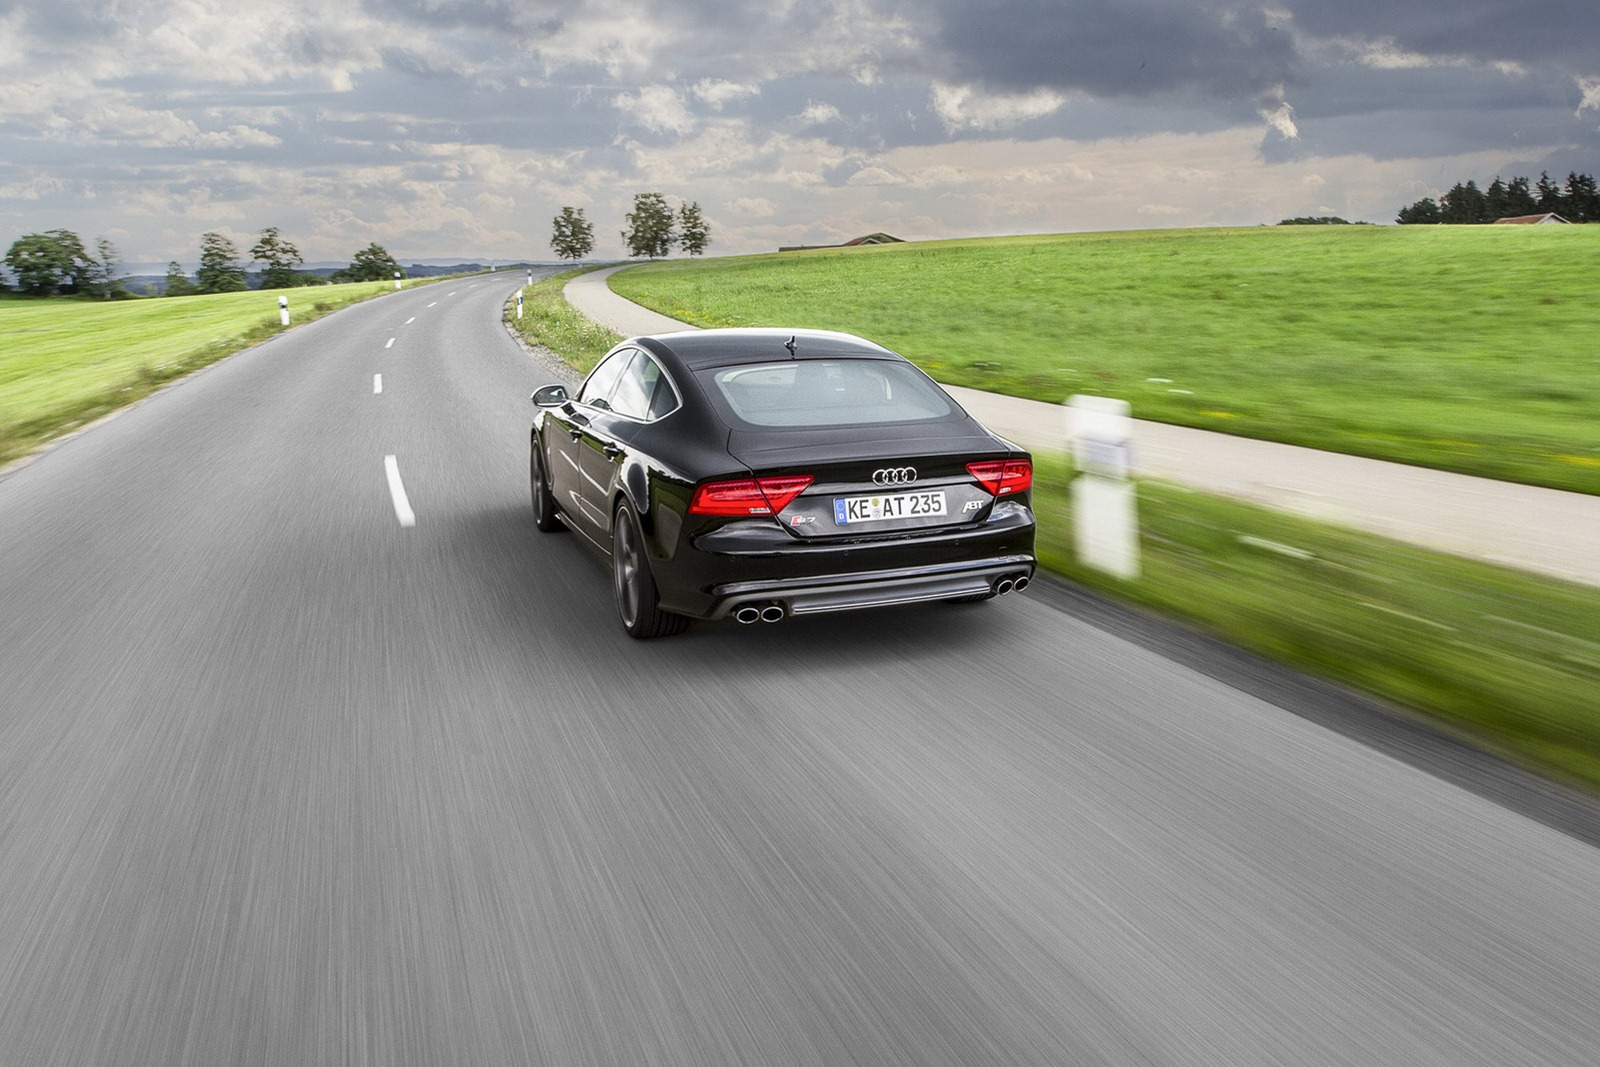 ABT Sportsline tunes the new Audi S7 Sportback